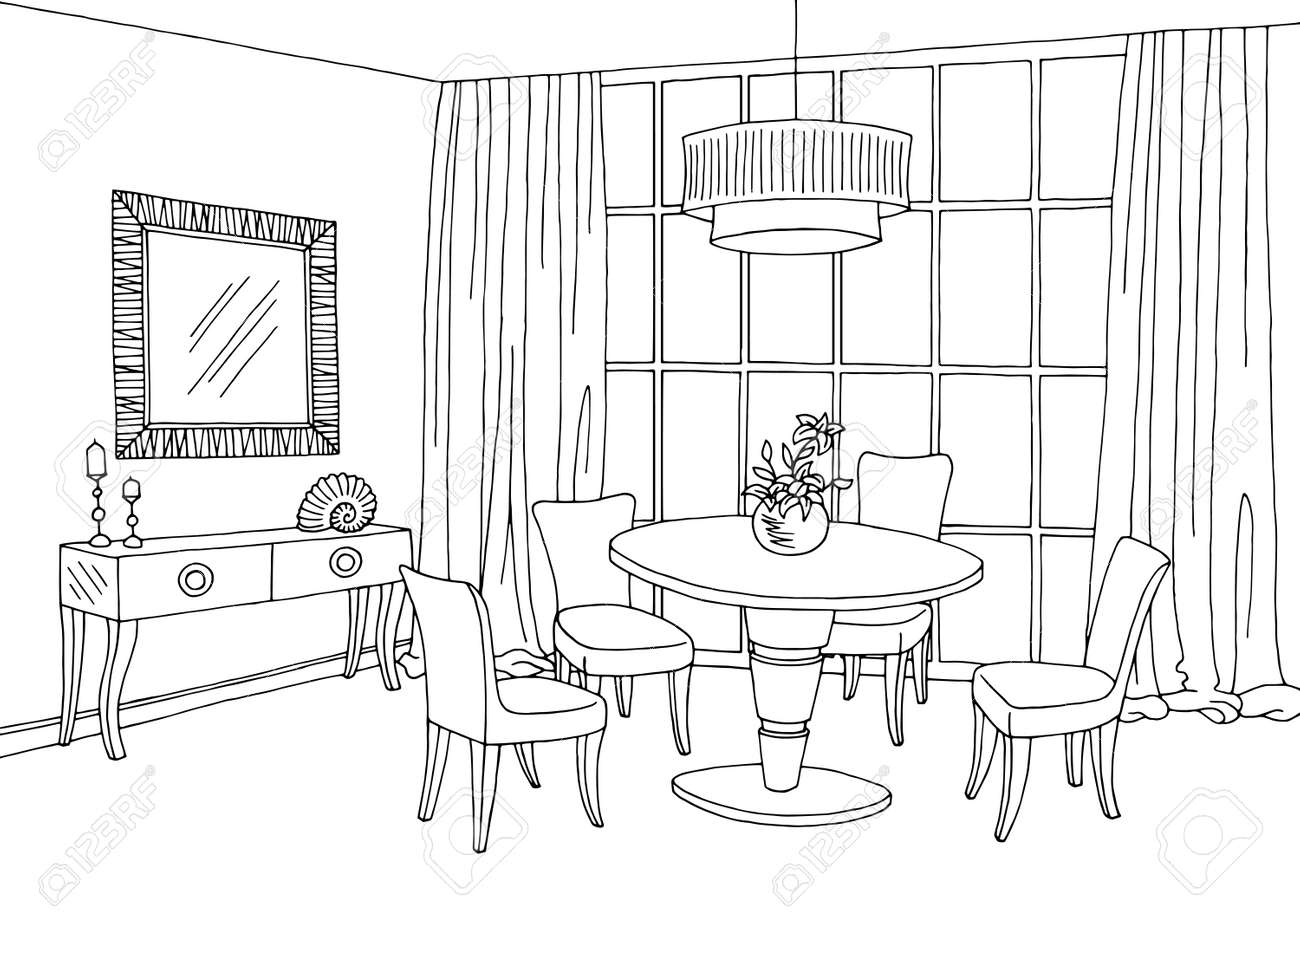 Dining Room Graphic Black White Sketch Illustration Vector Stock Vector    69012133